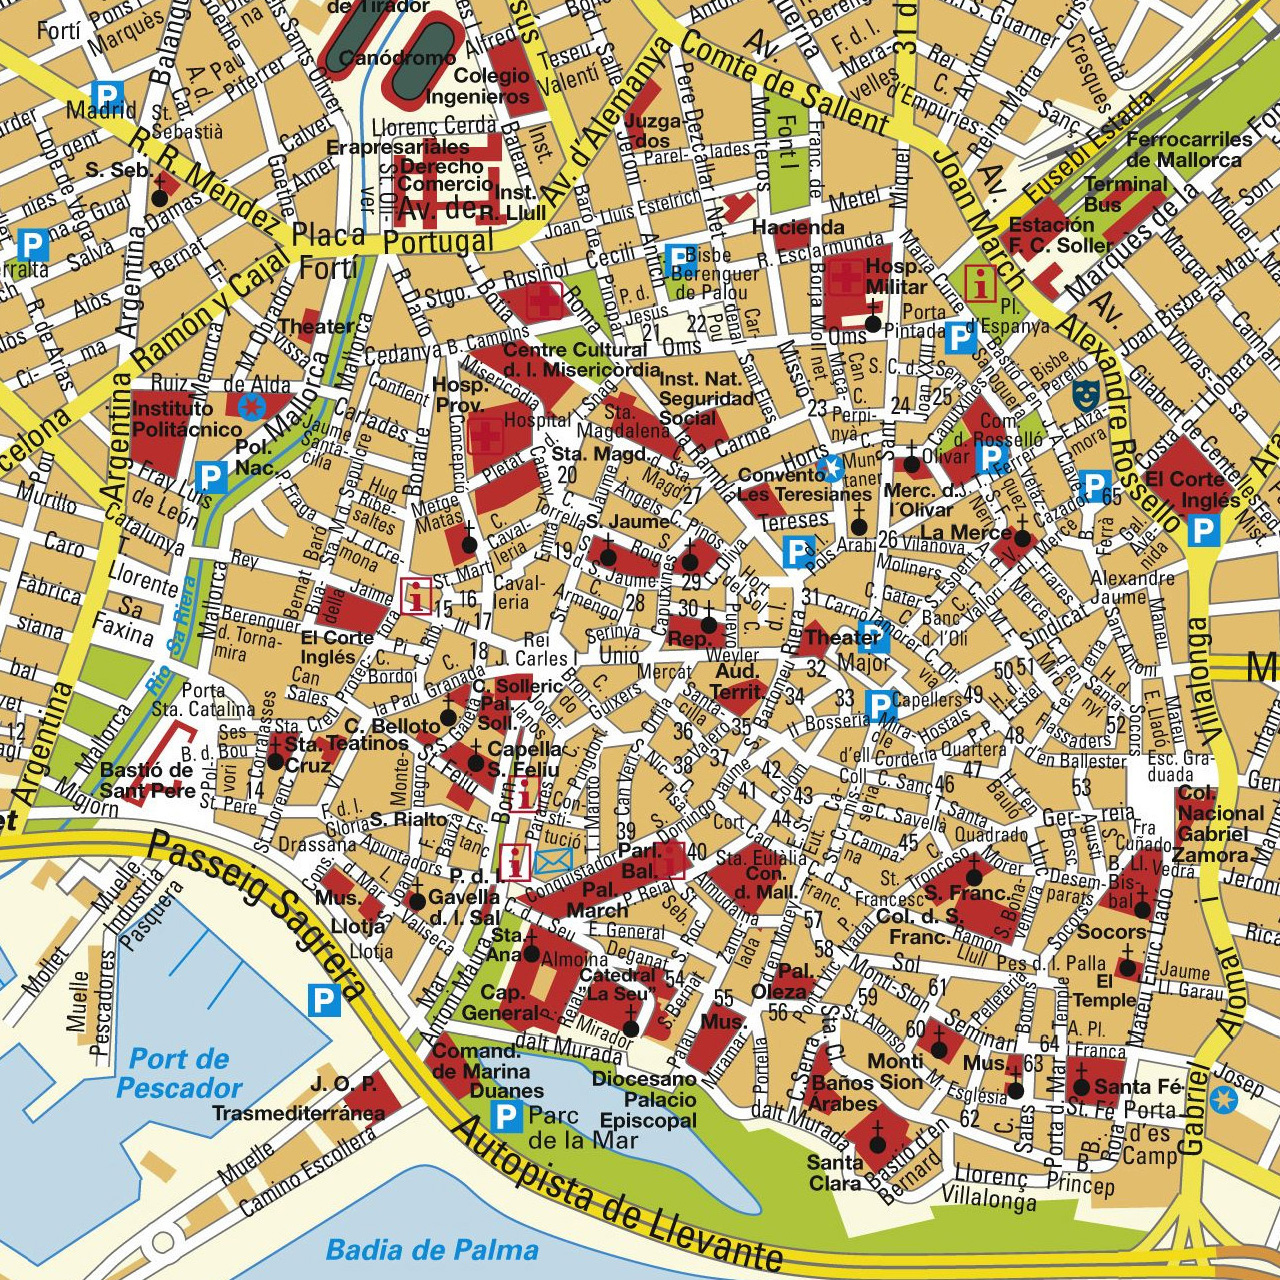 Interactive Map Of The Old Town Of Palma De Mallorca